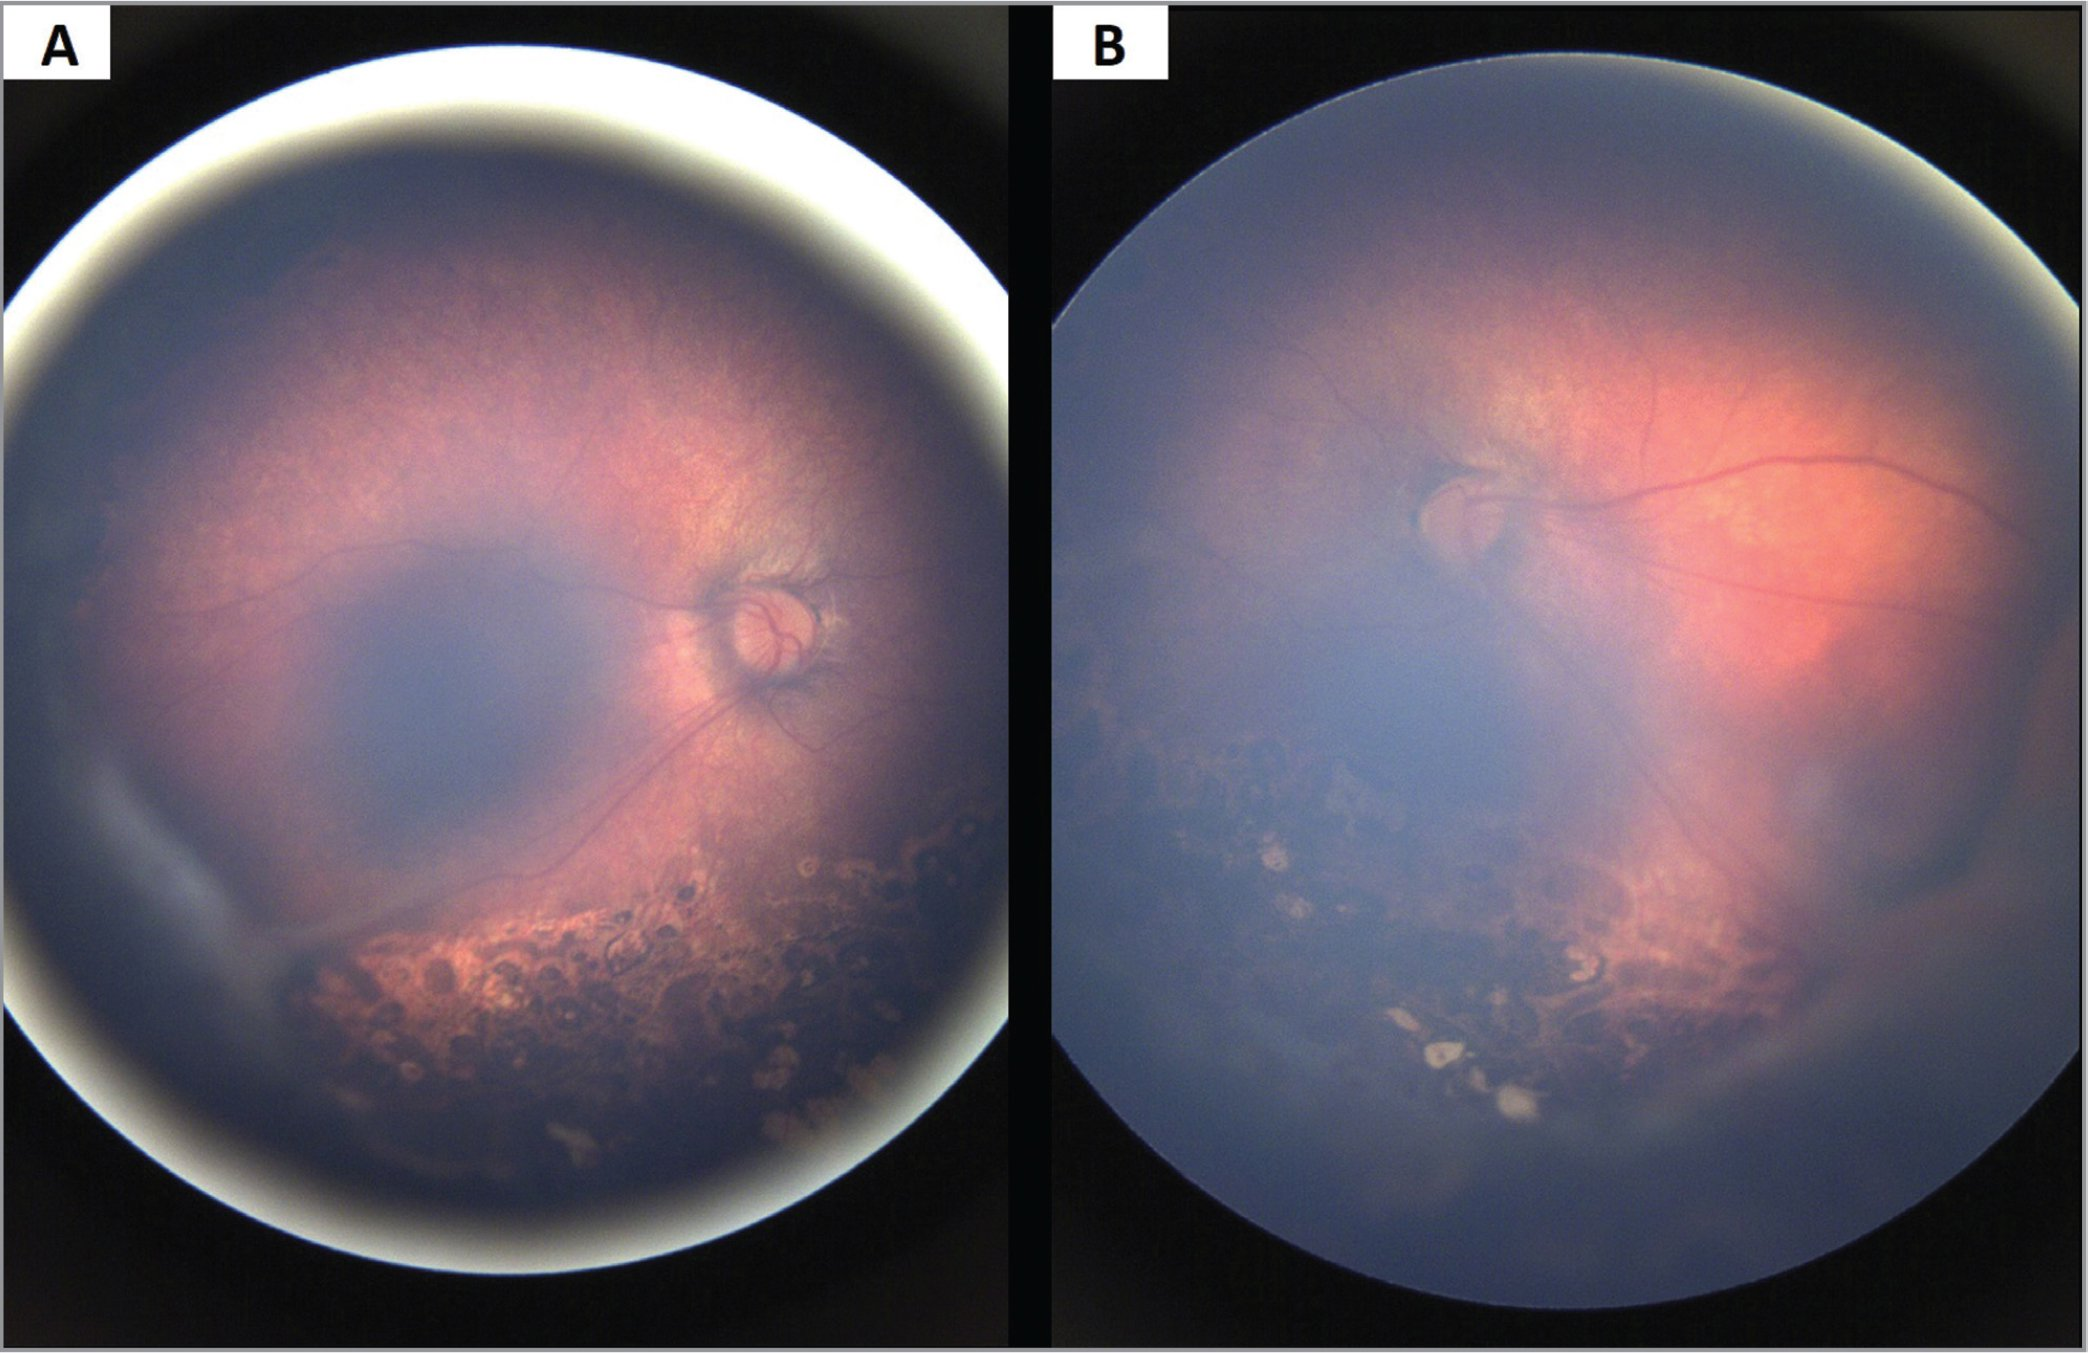 Released retrolenticular adhesion with near-resolution of the temporal exudative tractional retinal detachments in the right (A) and left (B) eyes status post-bilateral scleral buckling.